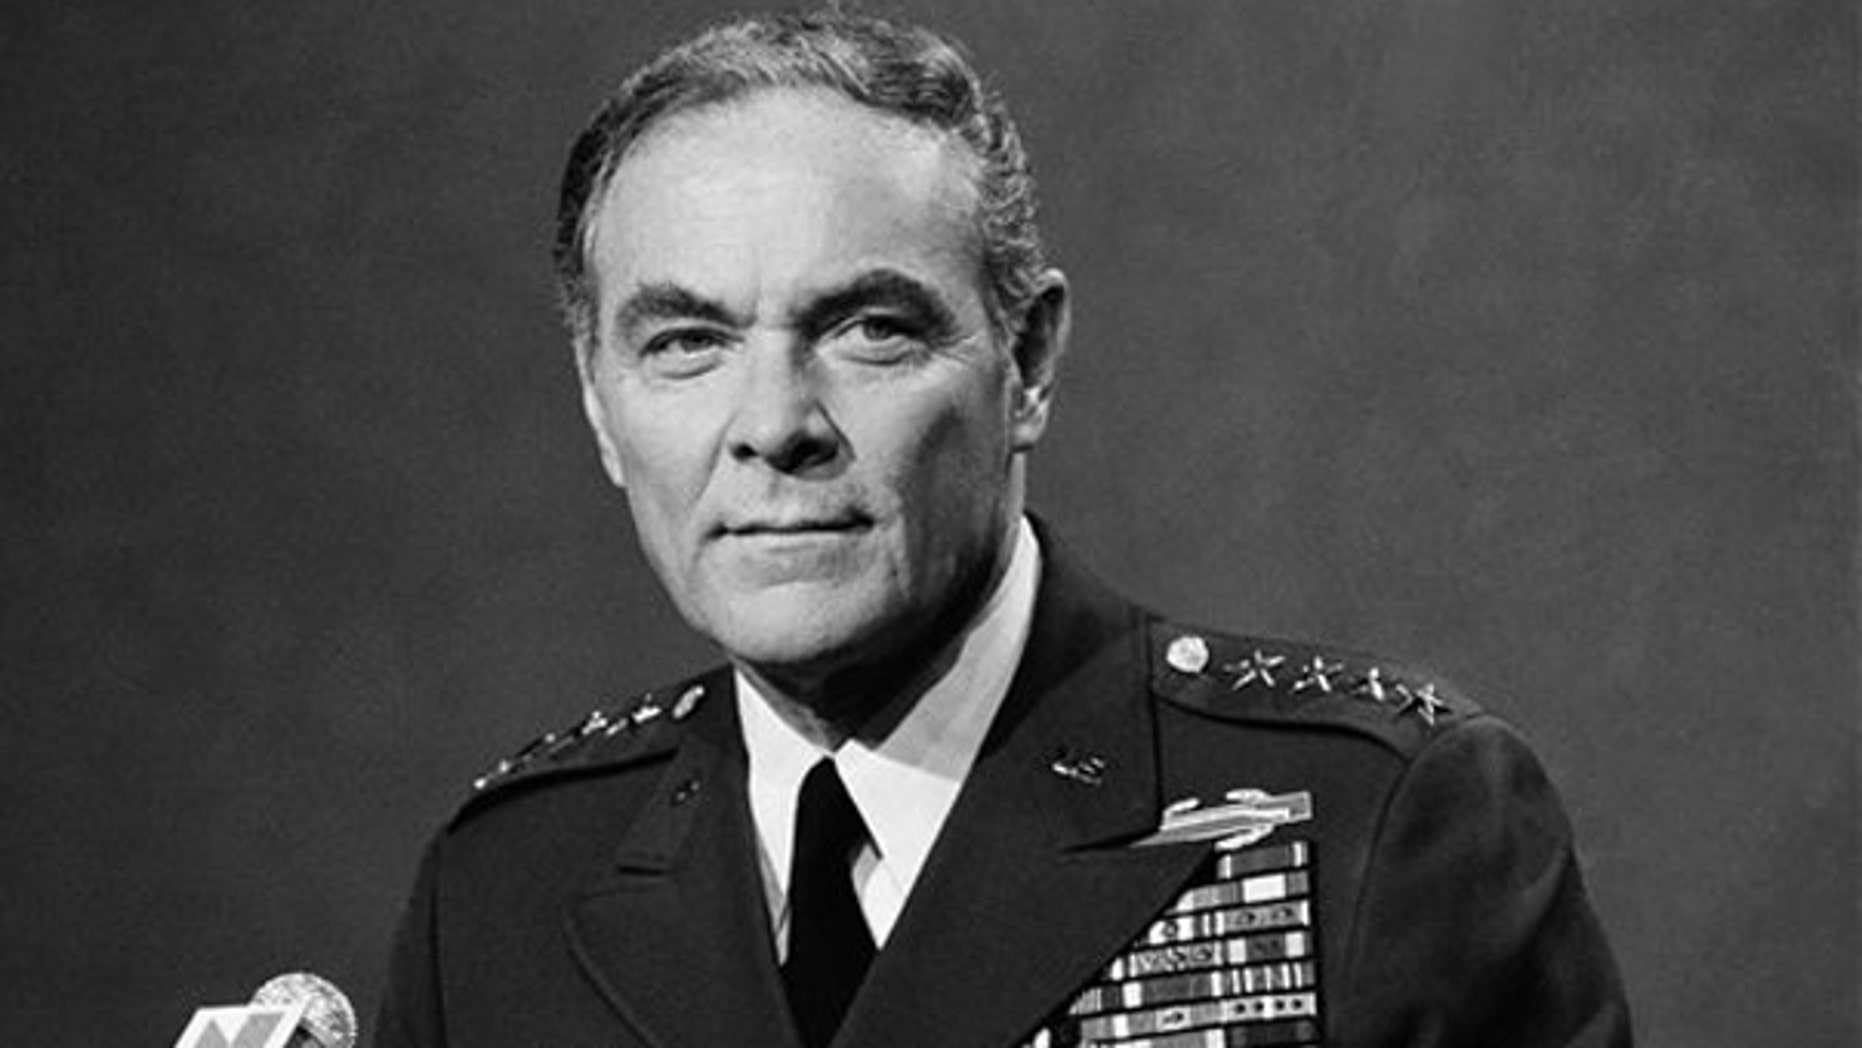 In this March 21, 1978 file photo, Gen. Alexander Haig, speaks at a Pentagon news conference on in Washington. (AP)